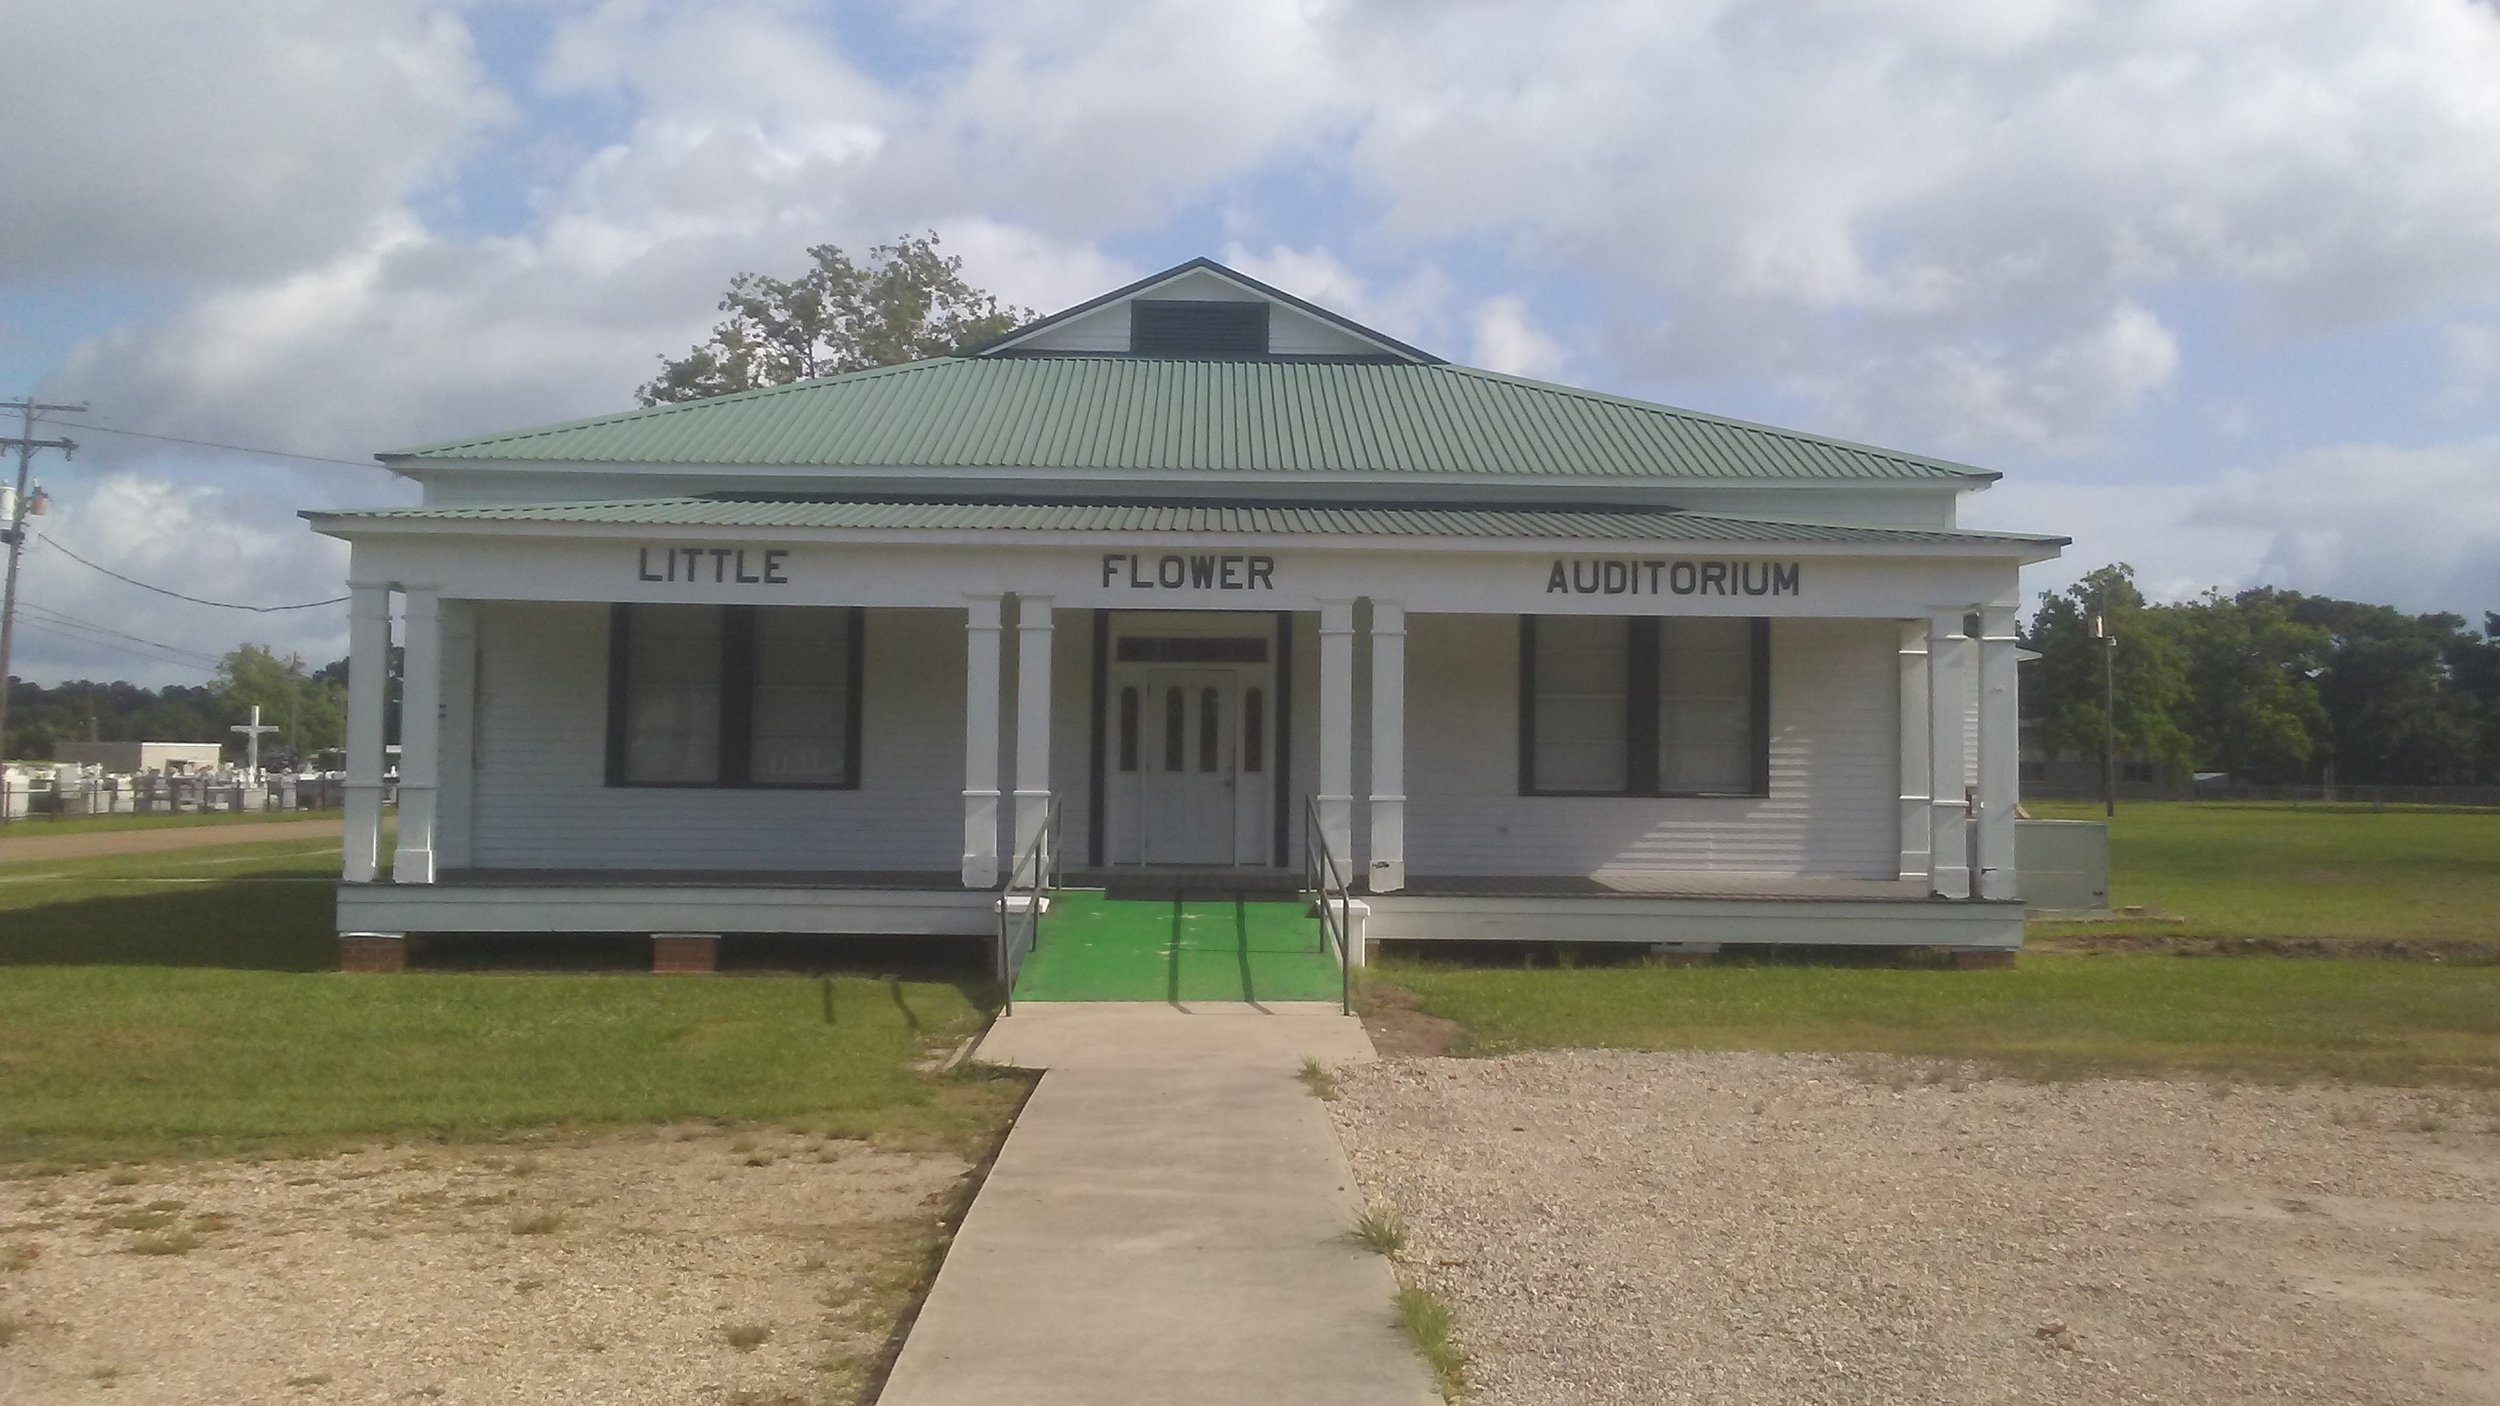 Little Flower Auditorium - Contact the Church Rectory for reservations.